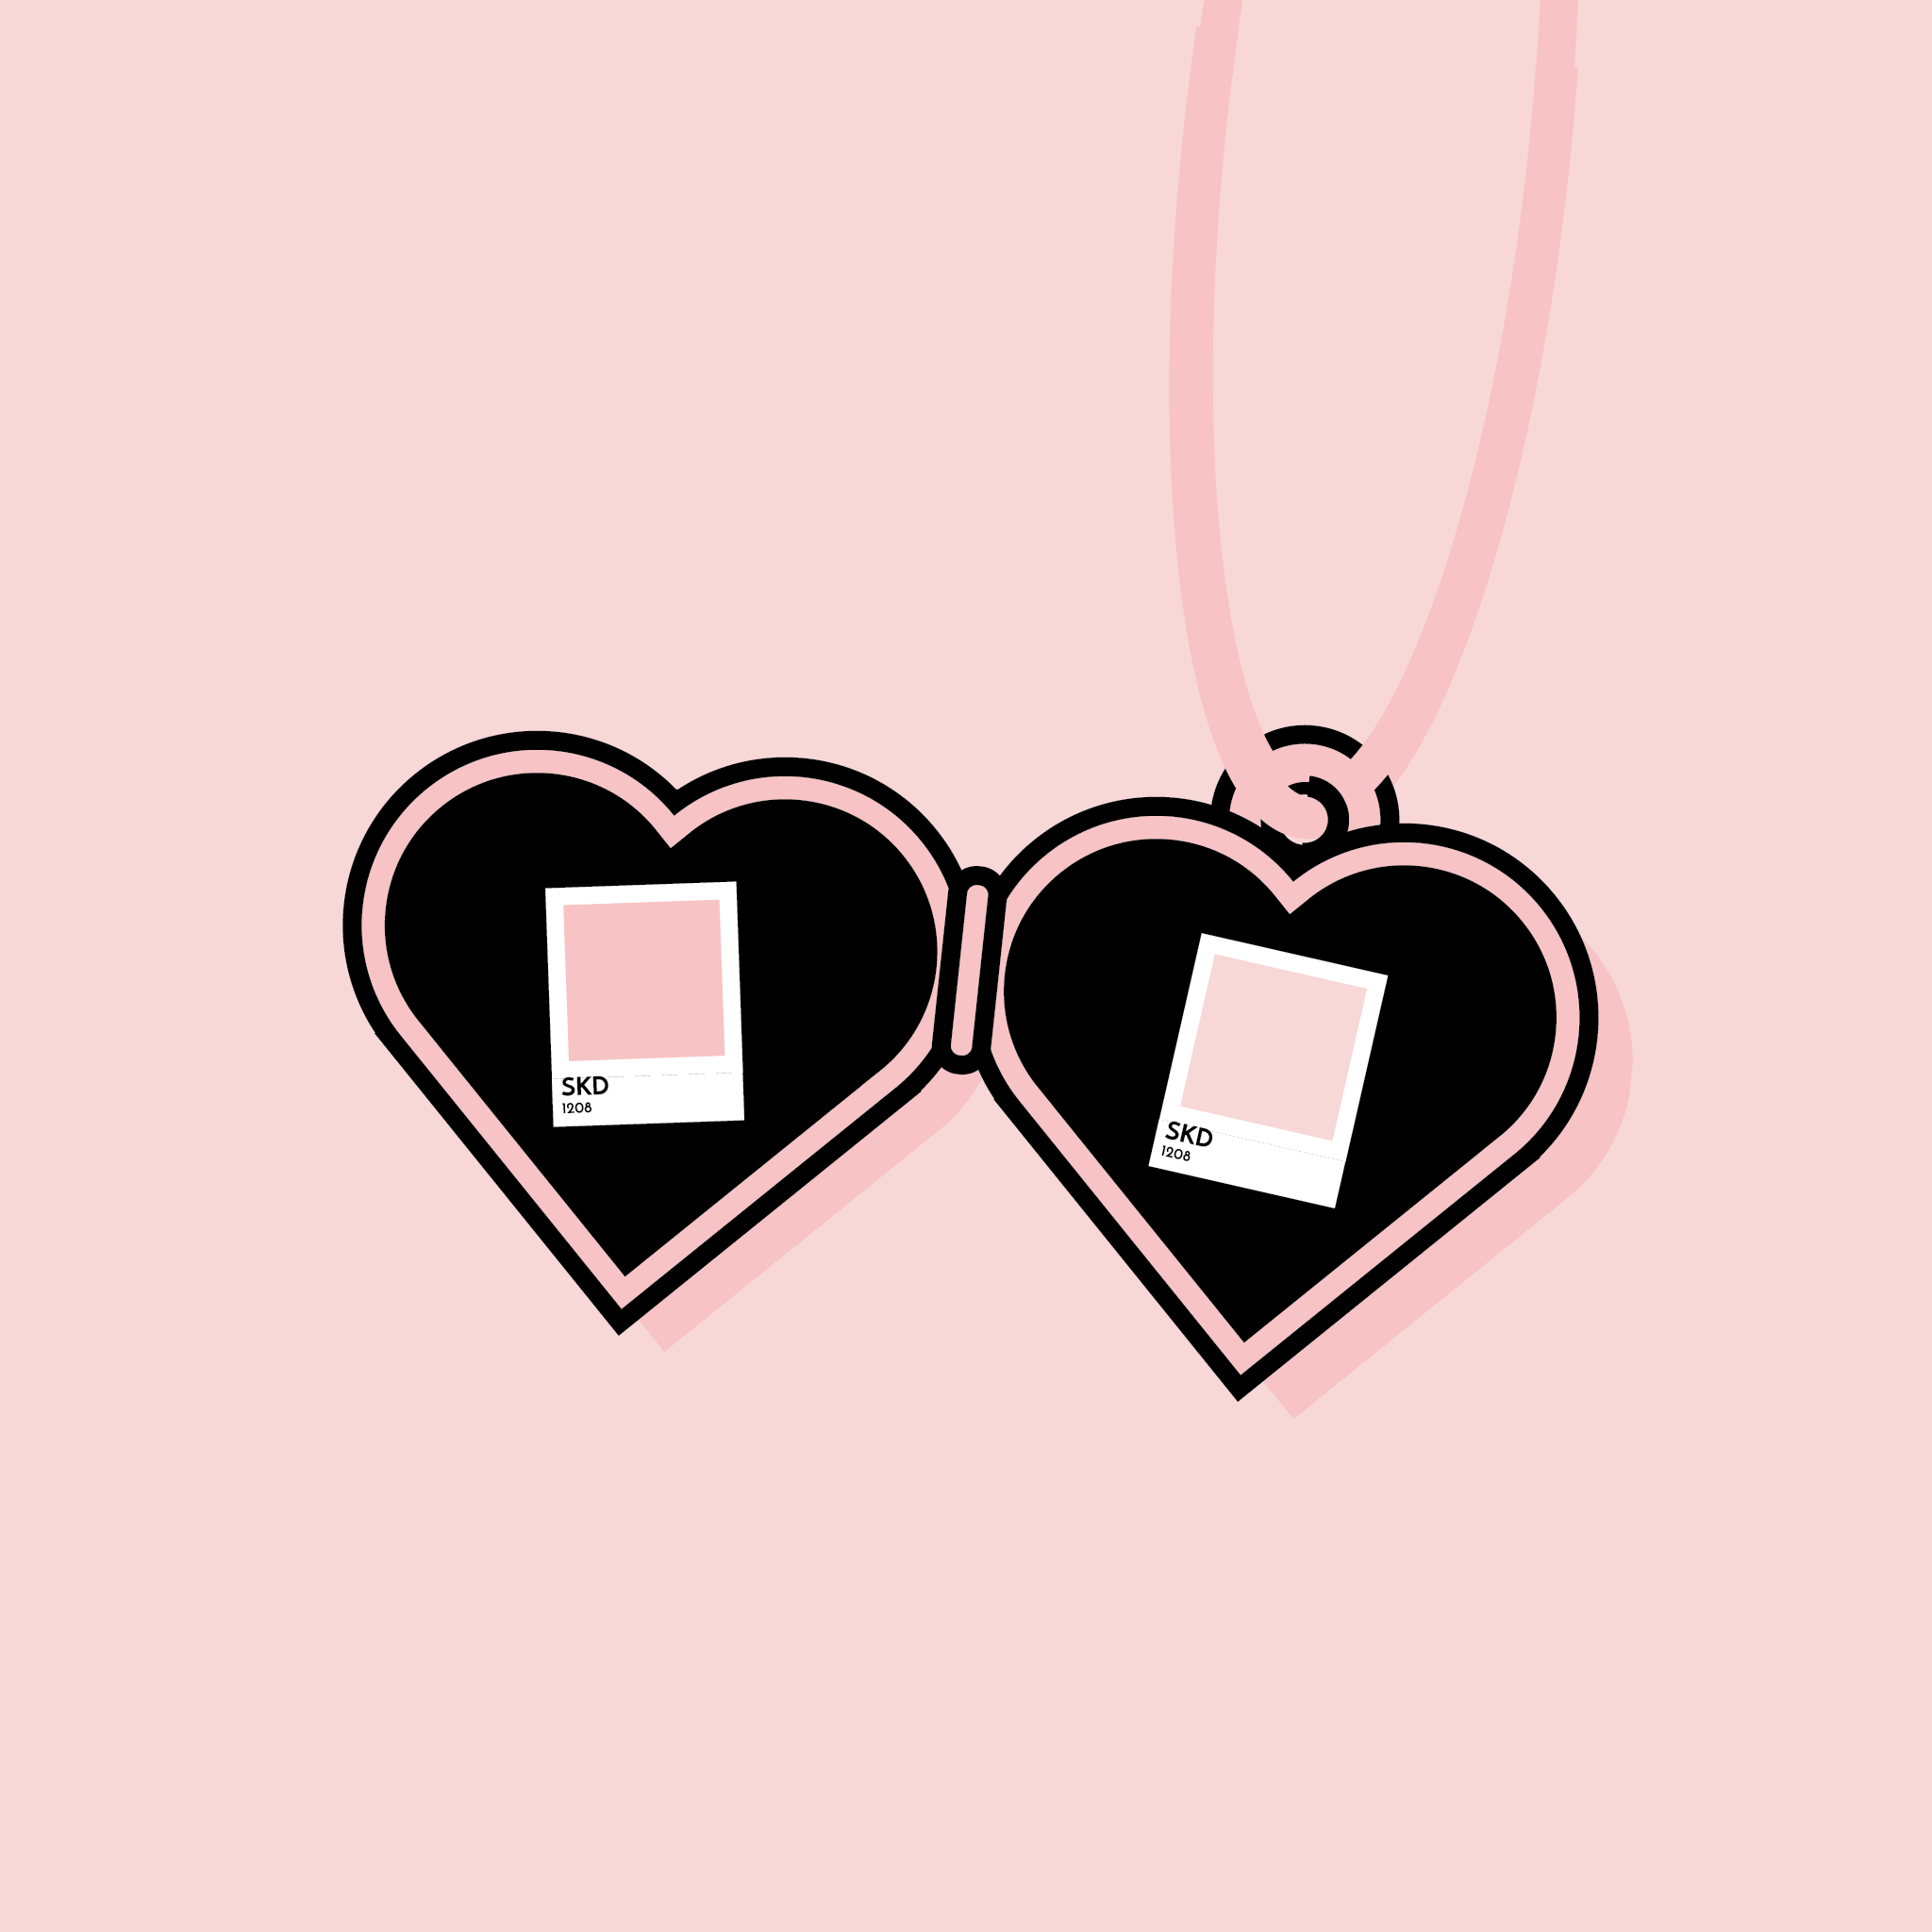 An illustration of color swatches in a heart-shaped locket